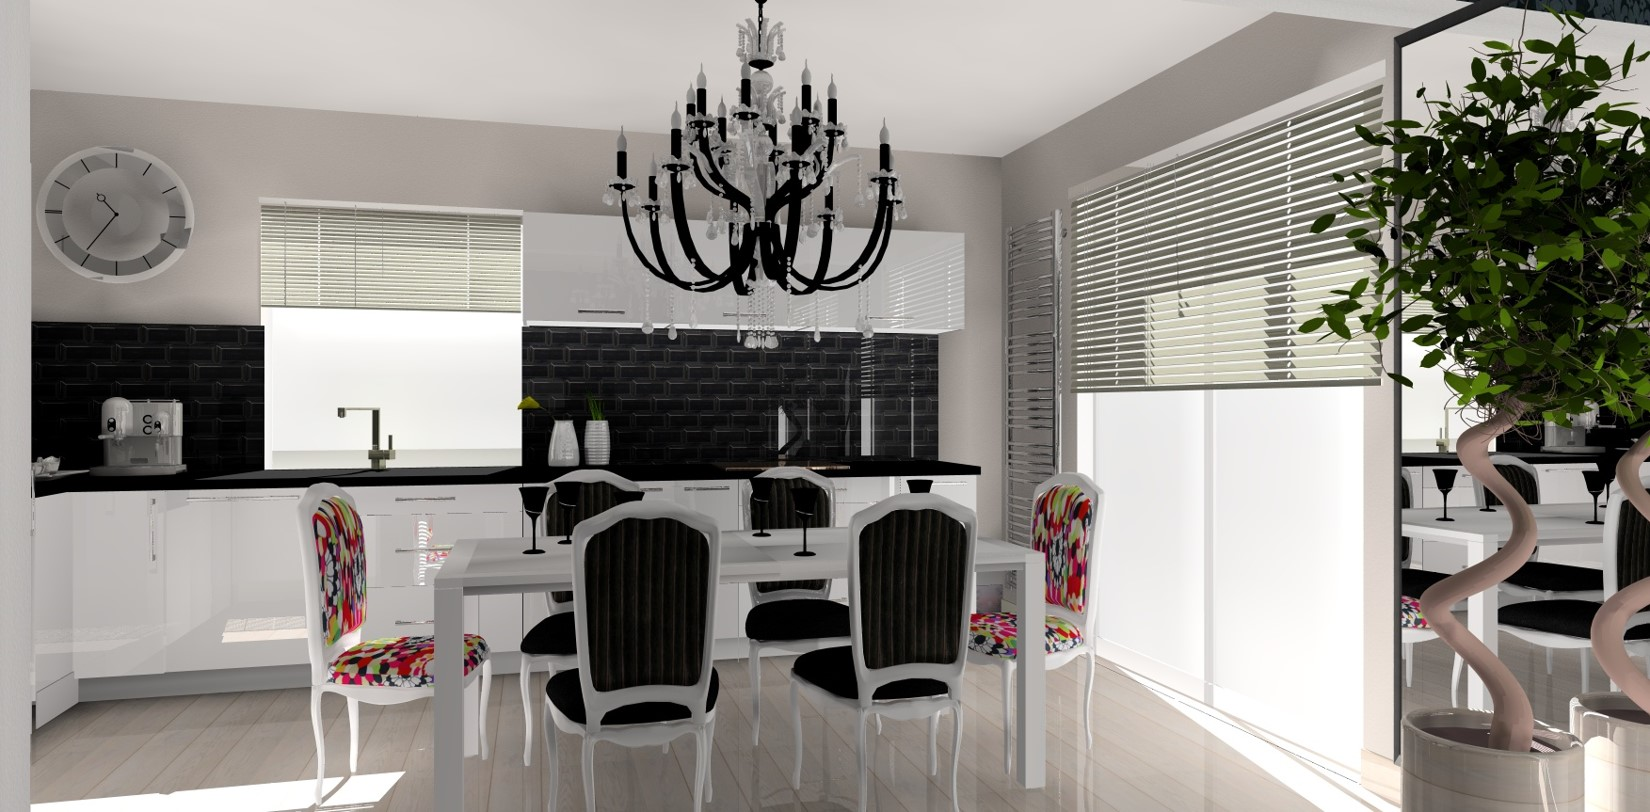 simulation 3d archives d coration et architecture d 39 int rieur home staging paris essonne. Black Bedroom Furniture Sets. Home Design Ideas